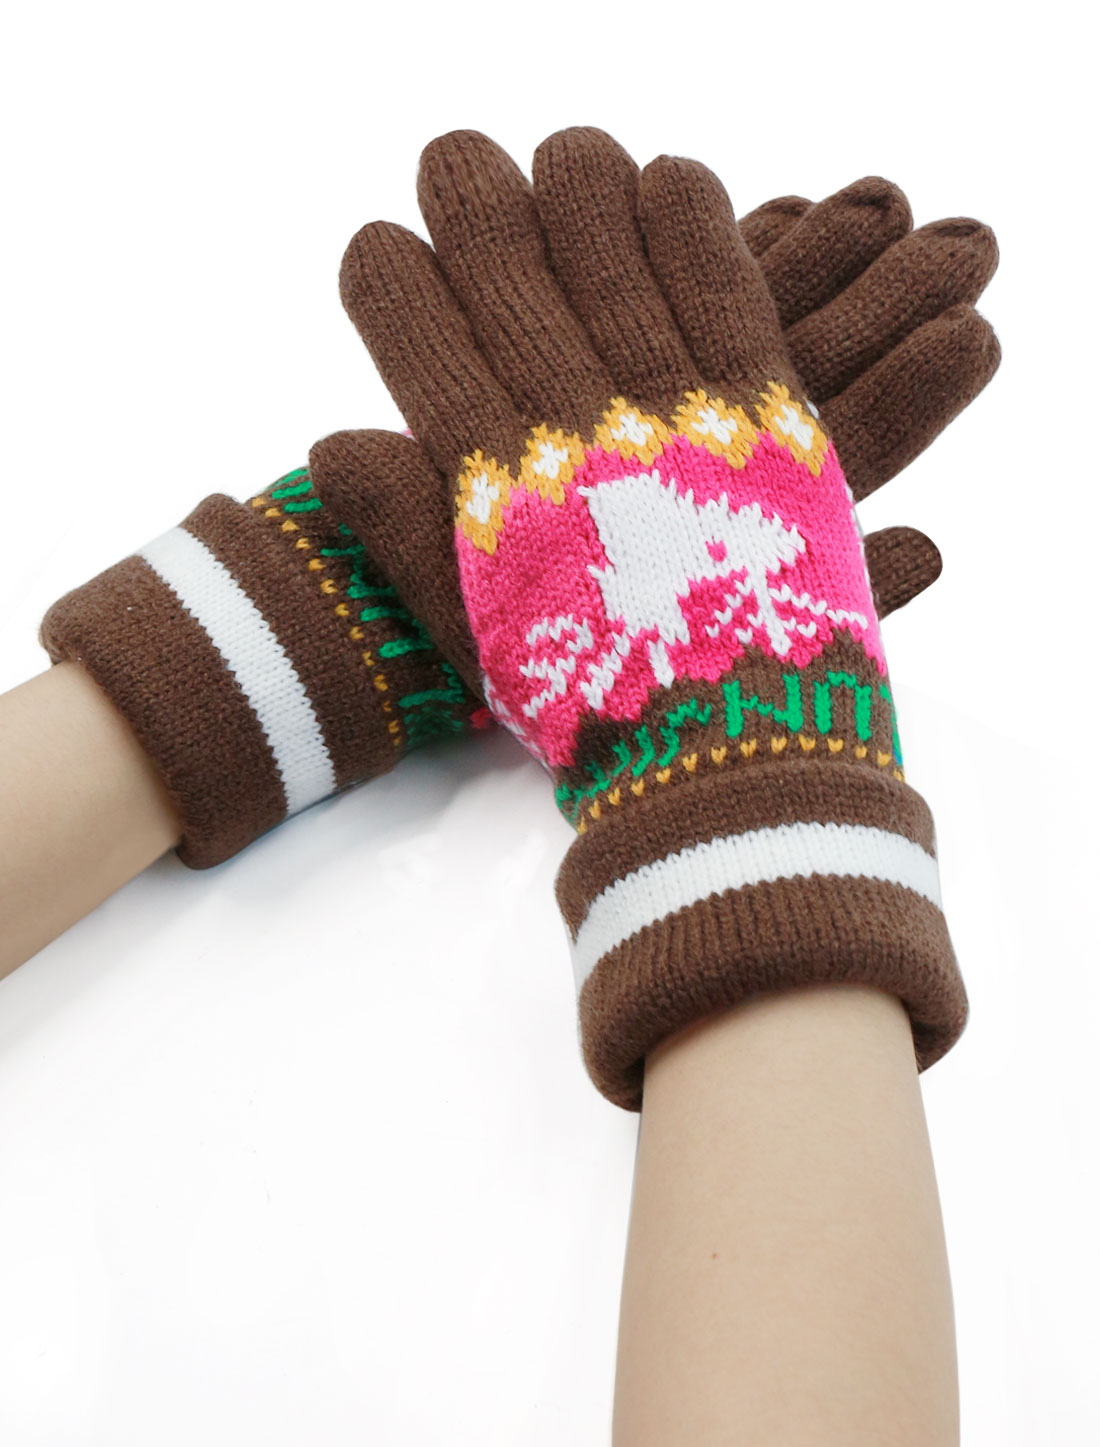 Women Palm Warm Five Fingers Deer Pattern Roll Up Cuffed Gloves Pair Brown